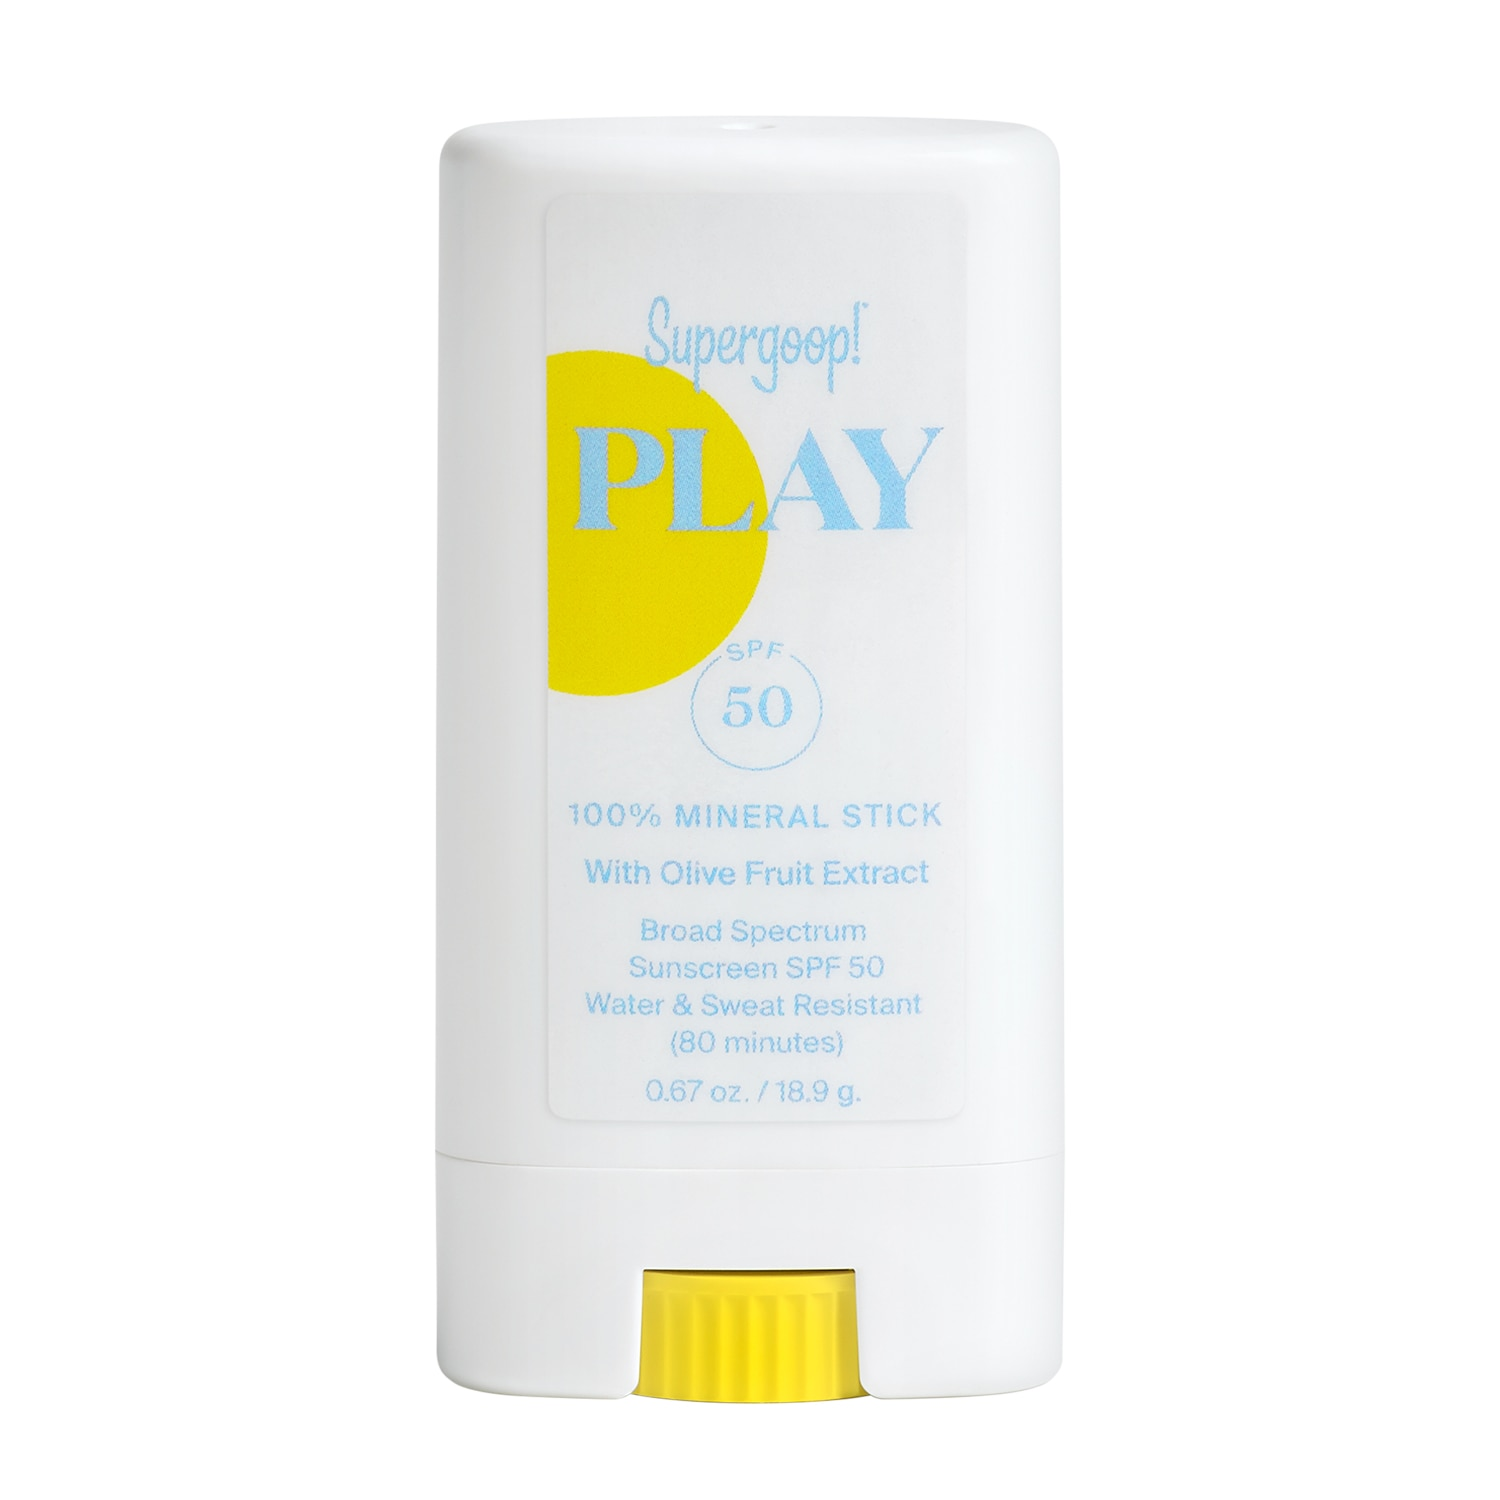 PLAY 100% MINERAL STICK SPF 50 WITH OLIVE FRUIT EXTRACT